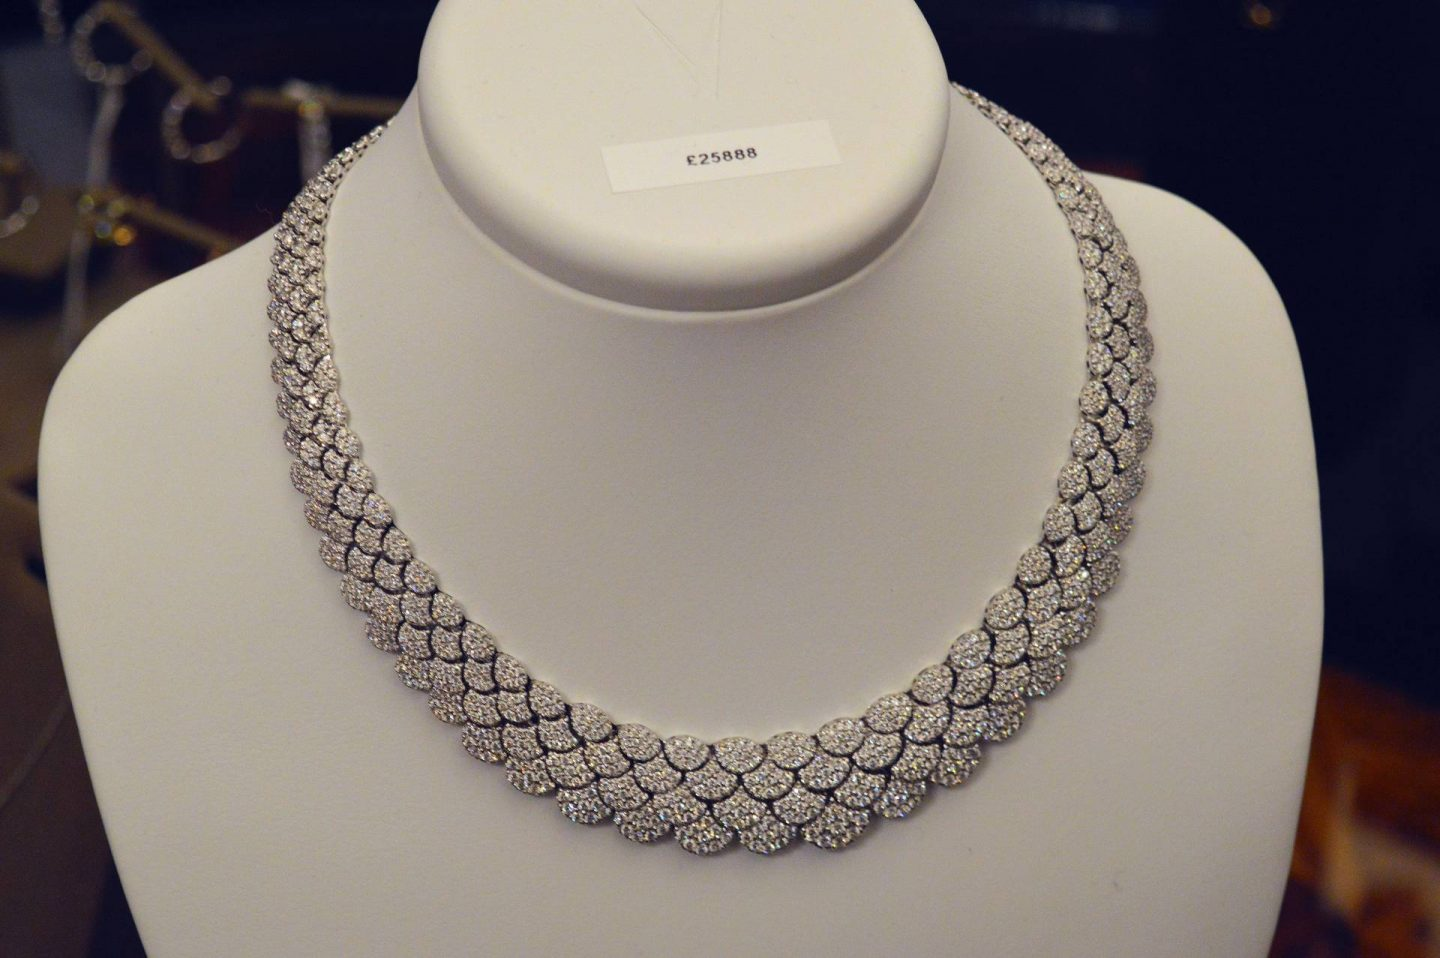 Dinner and Diamonds Event With John Pass Jewellers, diamond necklace